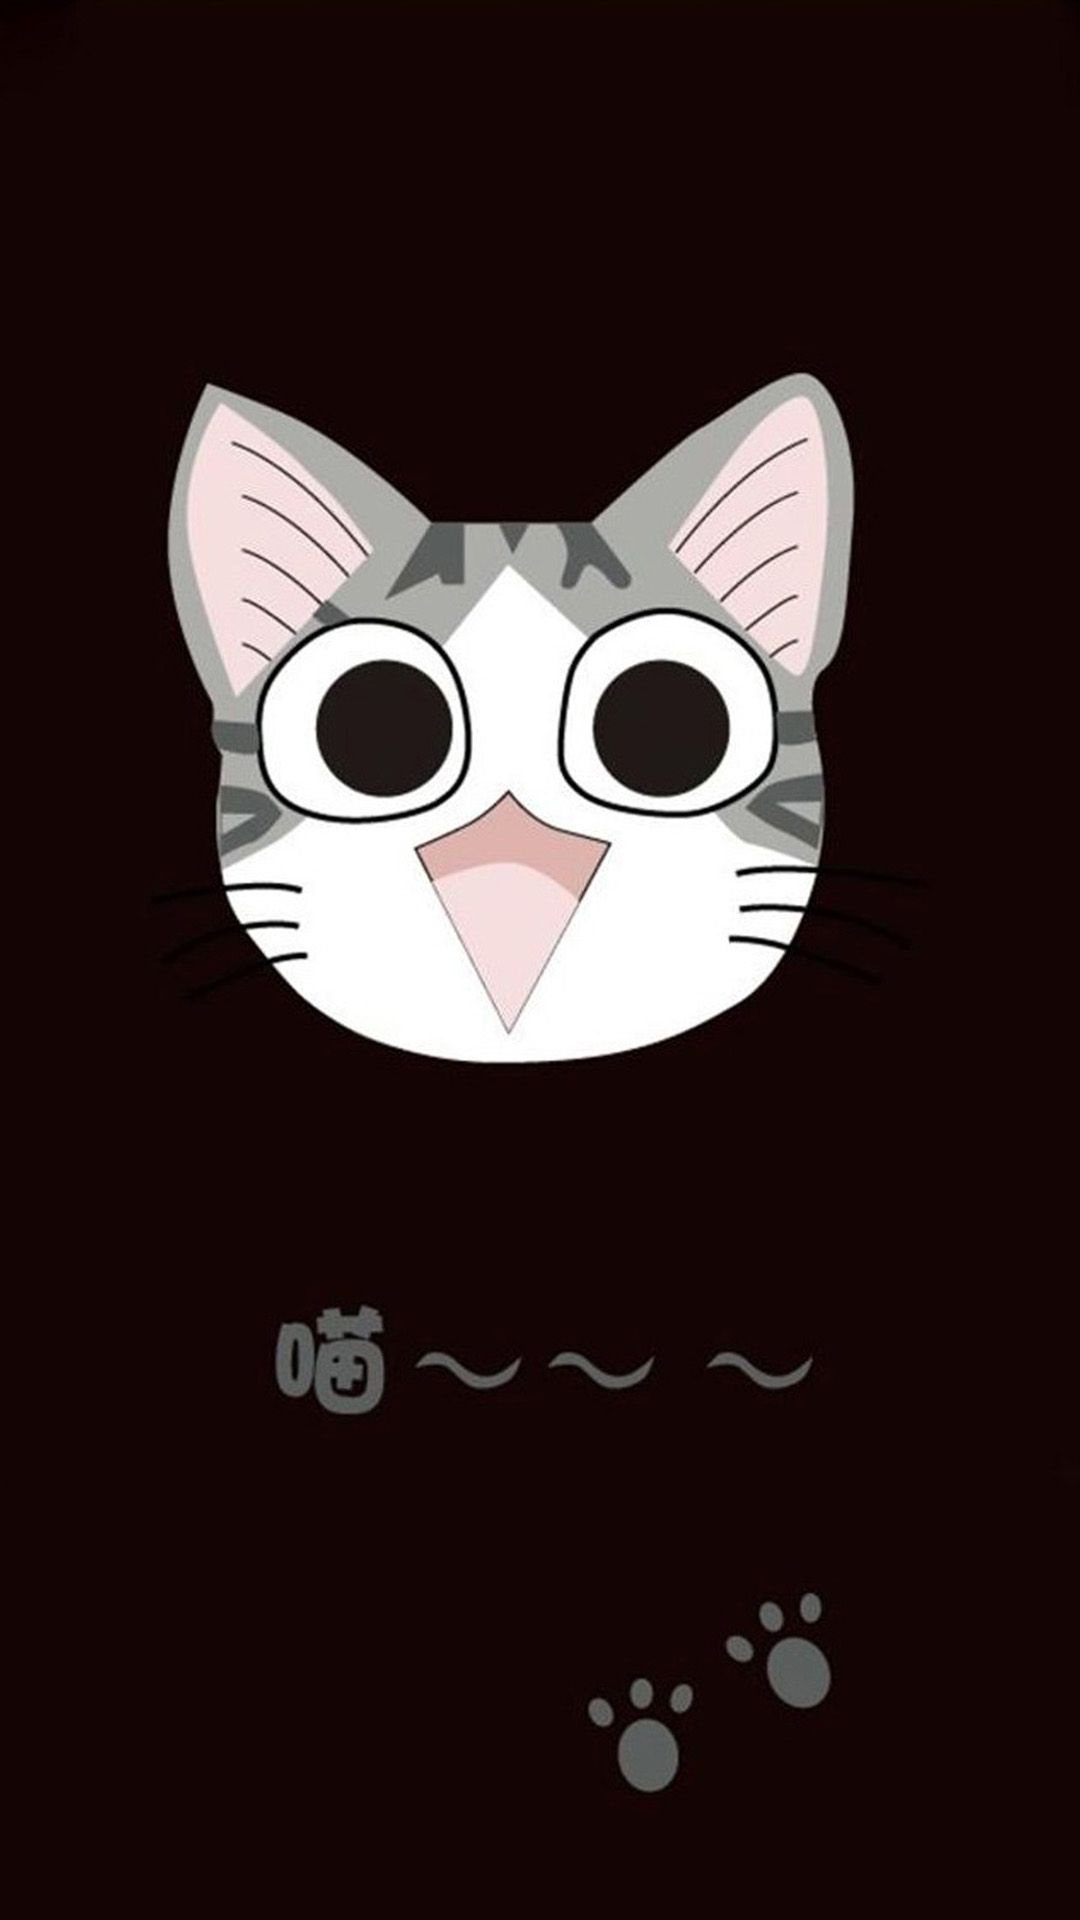 Pin By Bulus 01 On Cat Phone Wallpapers Kawaii Wallpaper Iphone Cartoon Cute Wallpapers